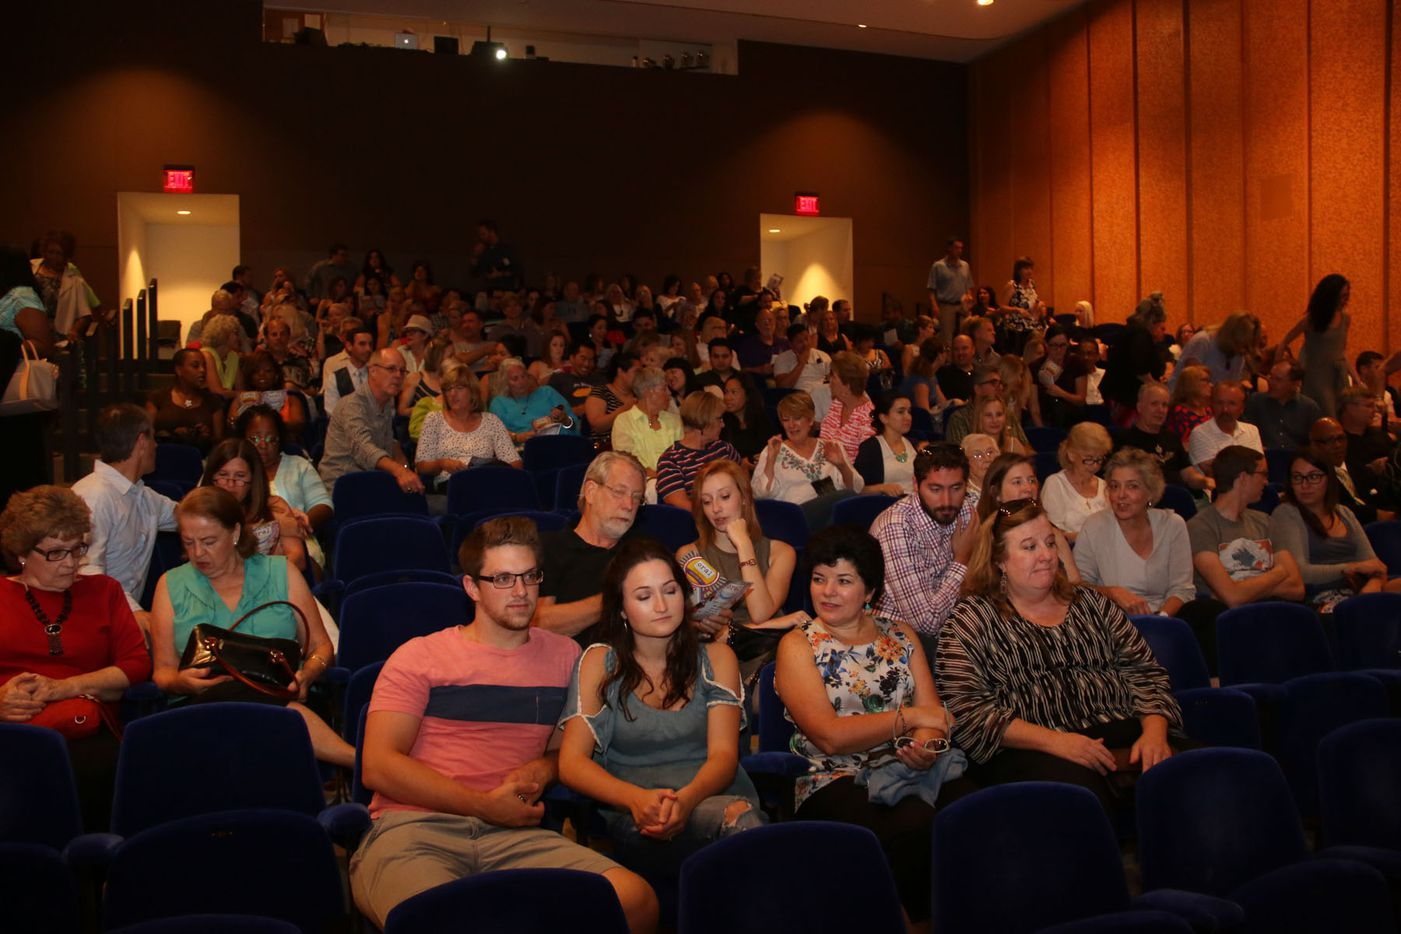 Oral Fixation concluded its 4th season with the best of season four at the Dallas Museum of Art on August 15, 2015